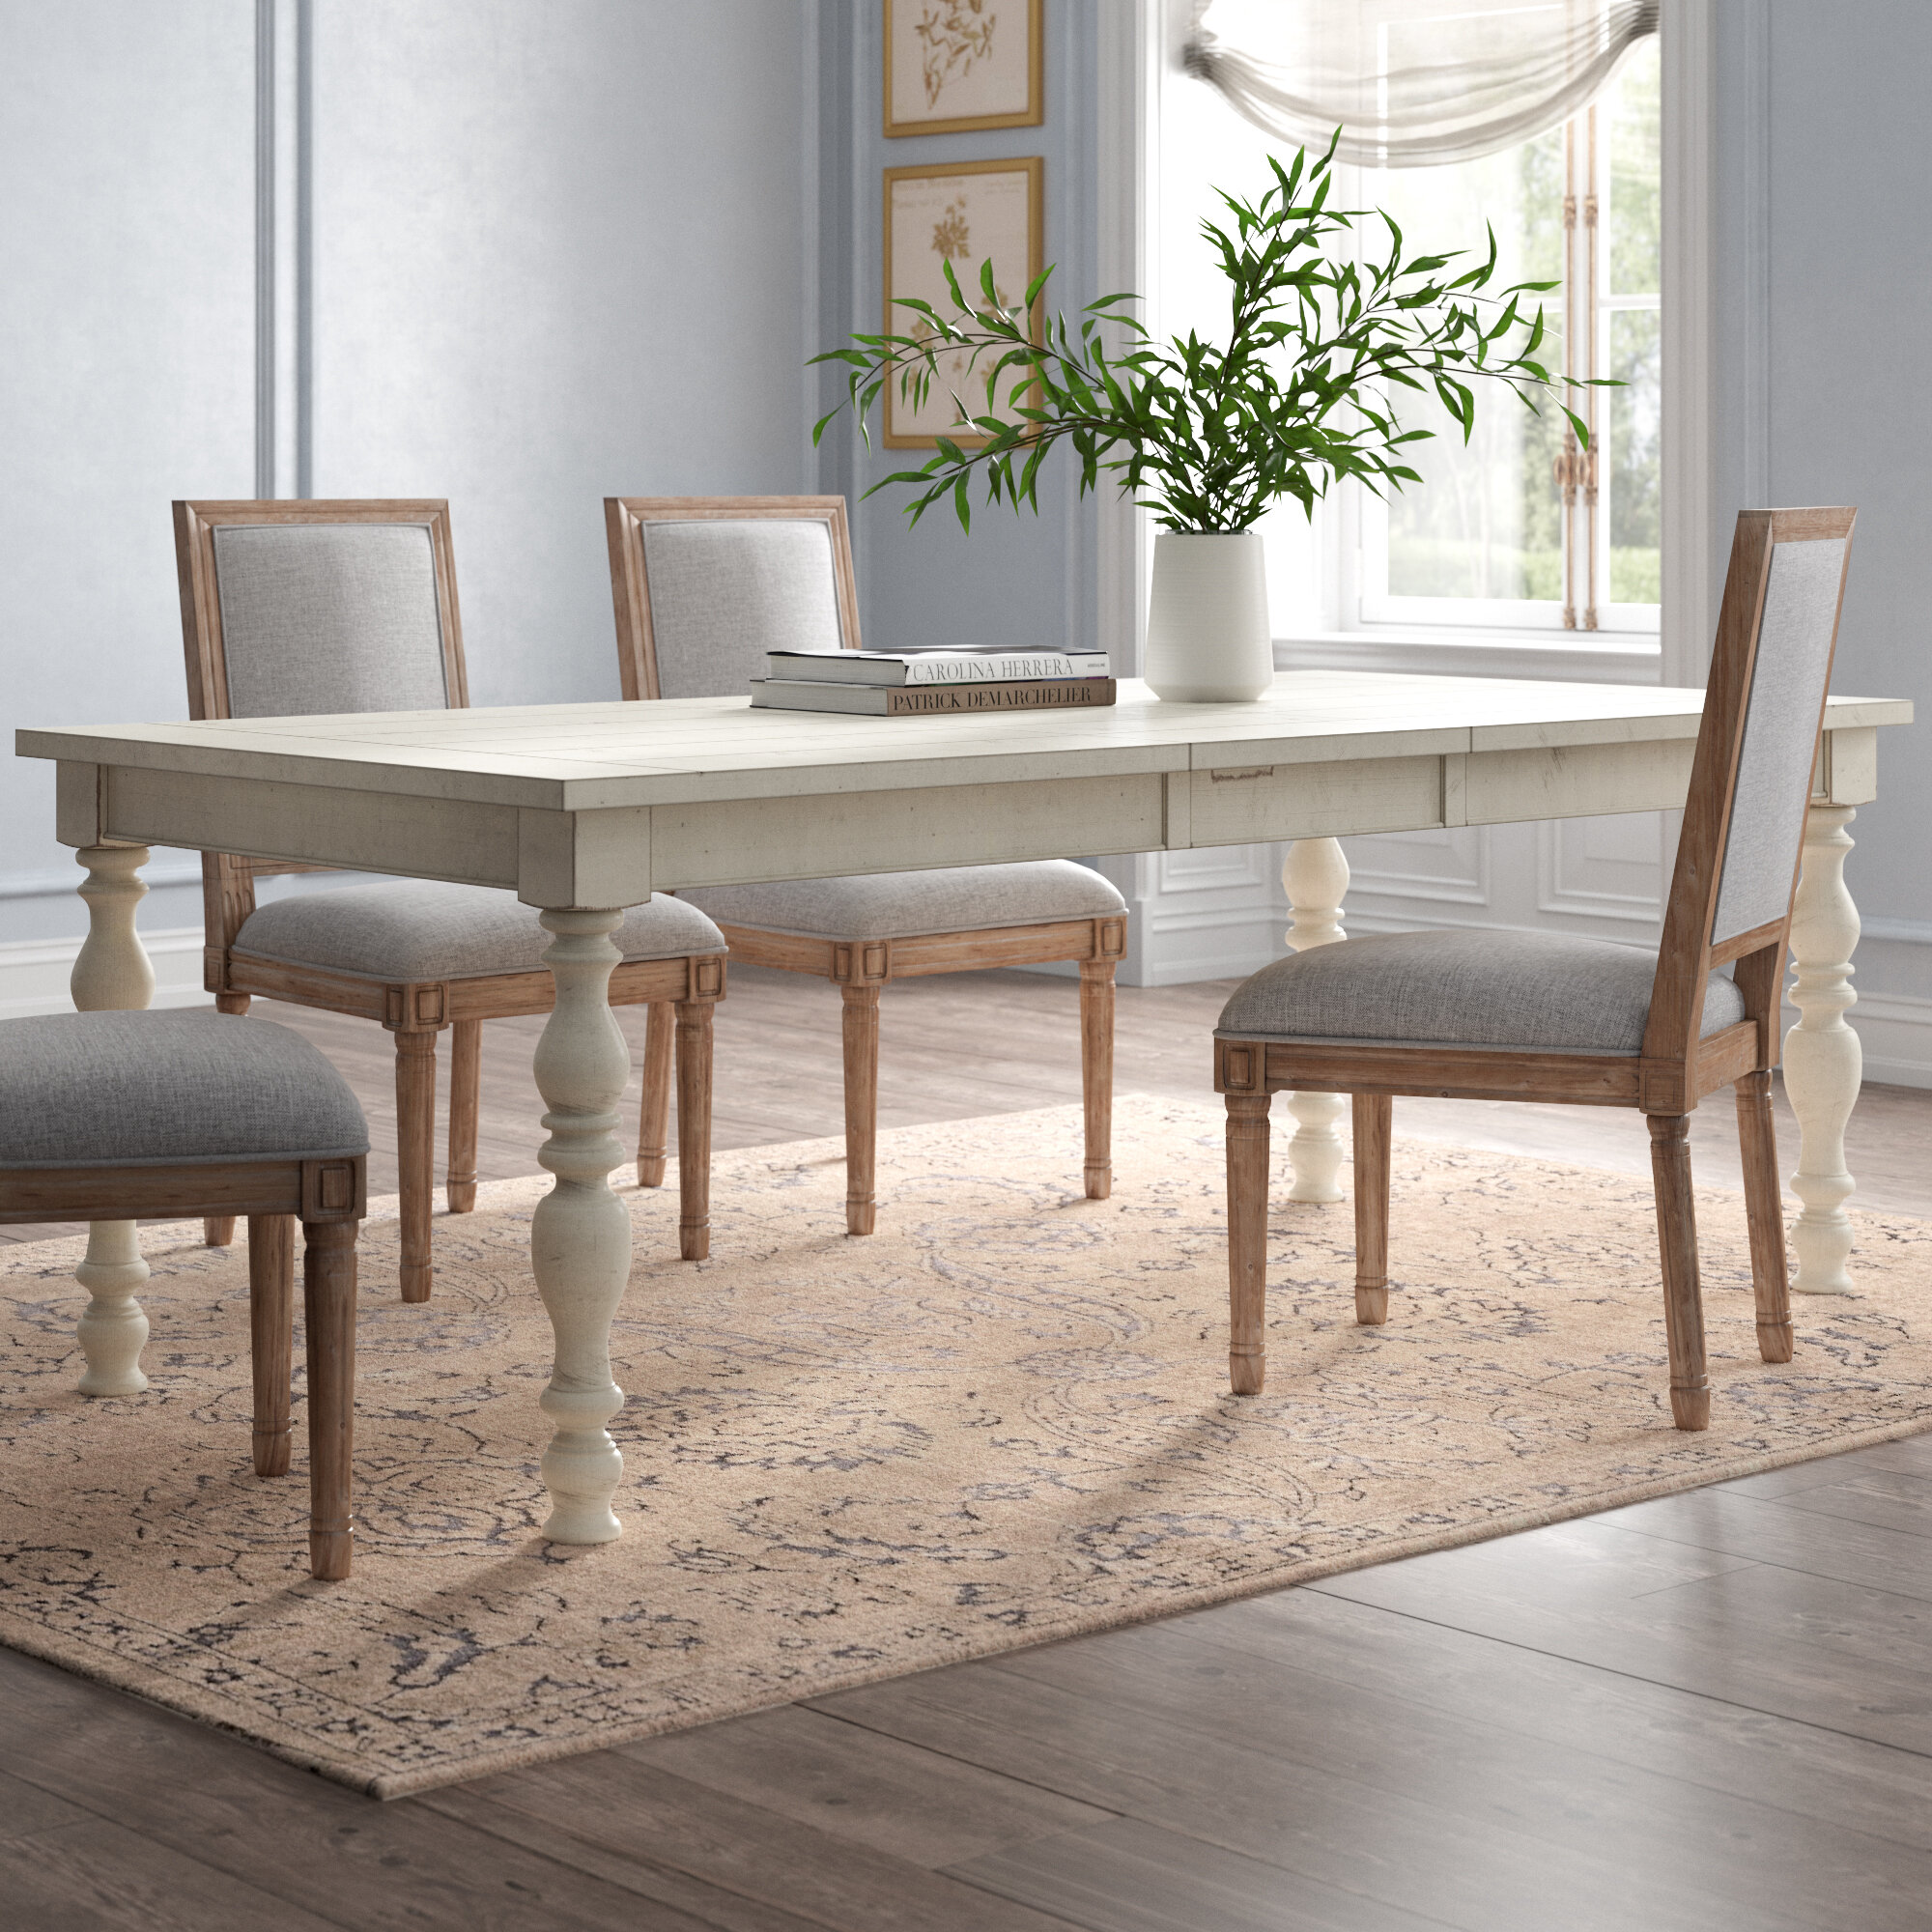 White Kelly Clarkson Home Kitchen Dining Tables You Ll Love In 2021 Wayfair